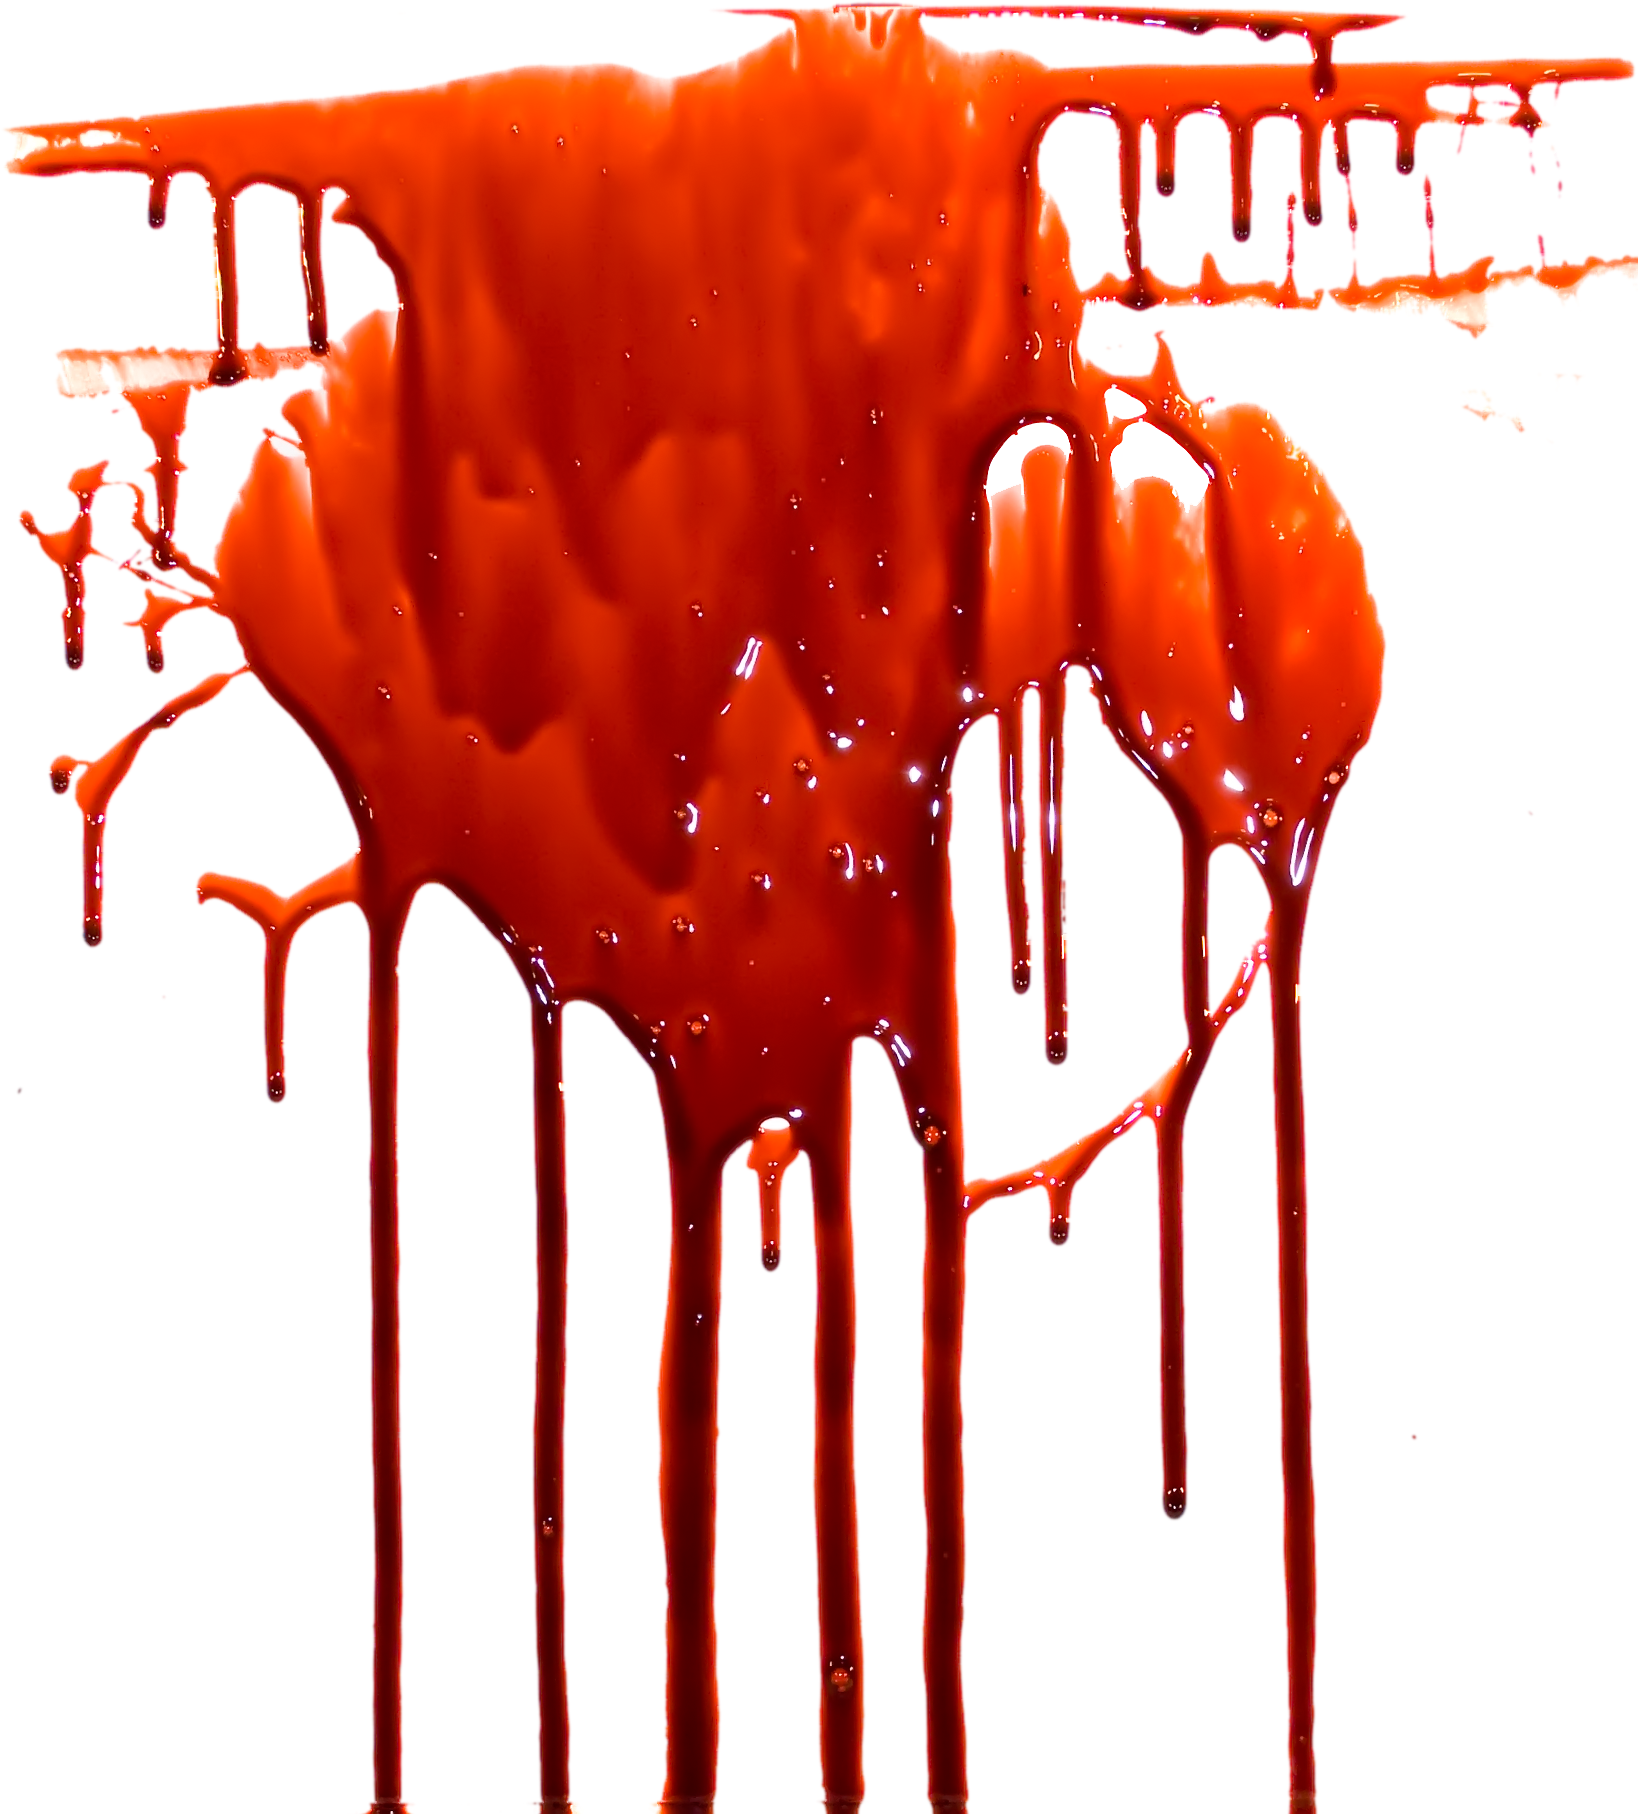 Puddle blood png. Images free download splashes